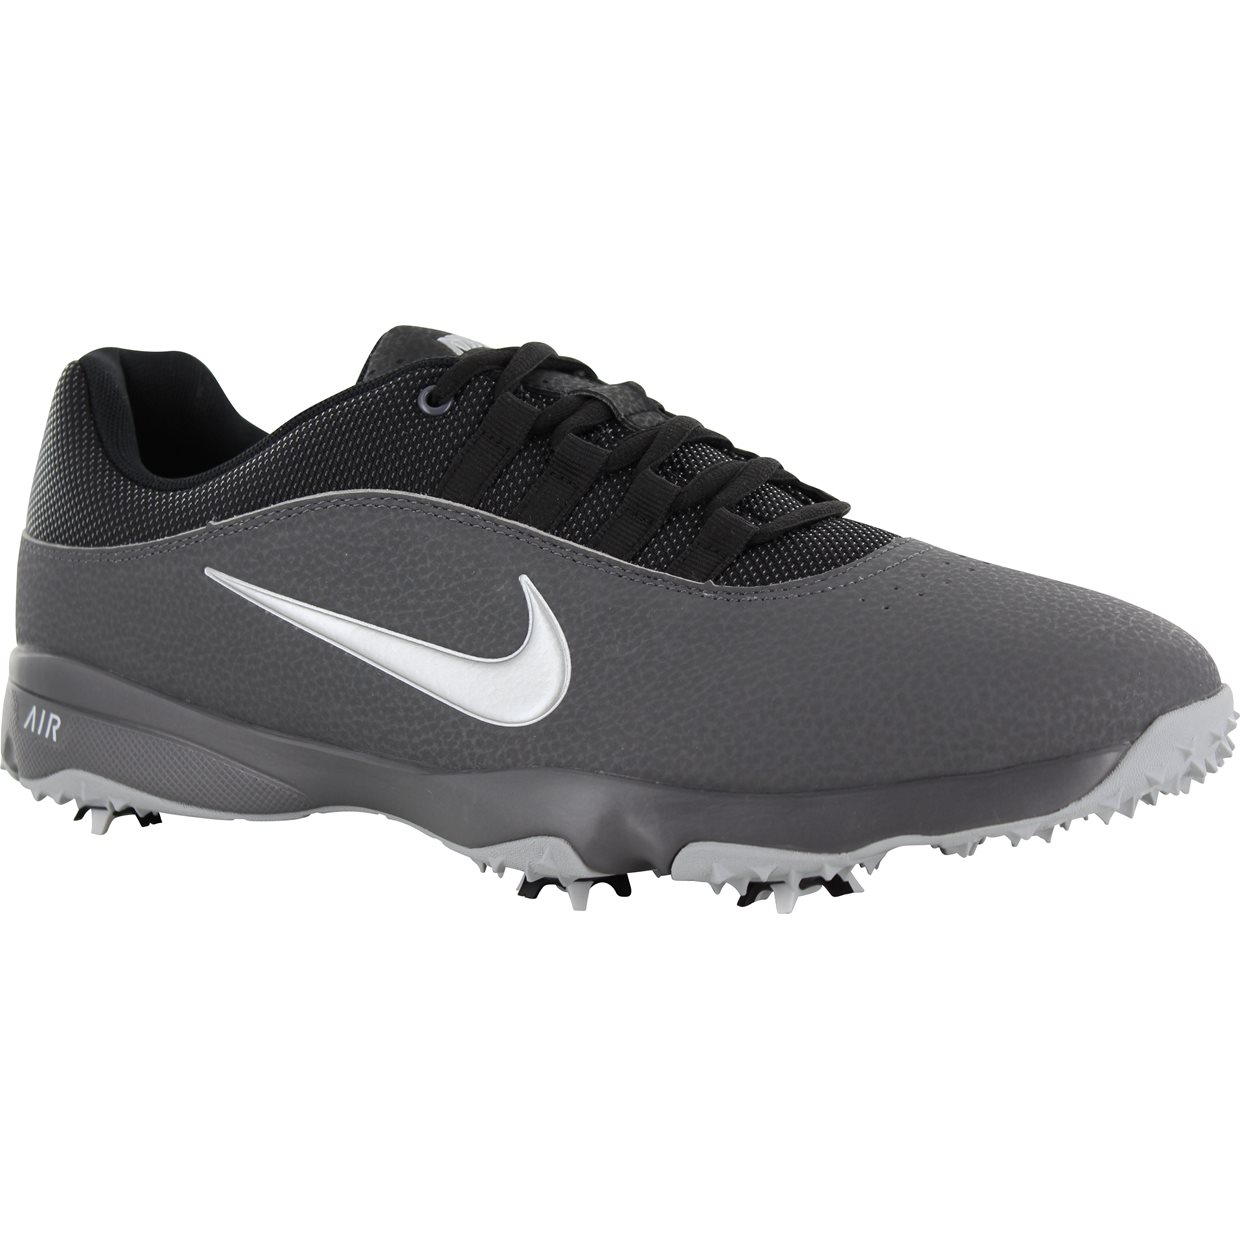 Nike Air Rival 4 Black Golf Shoe - Medium Width